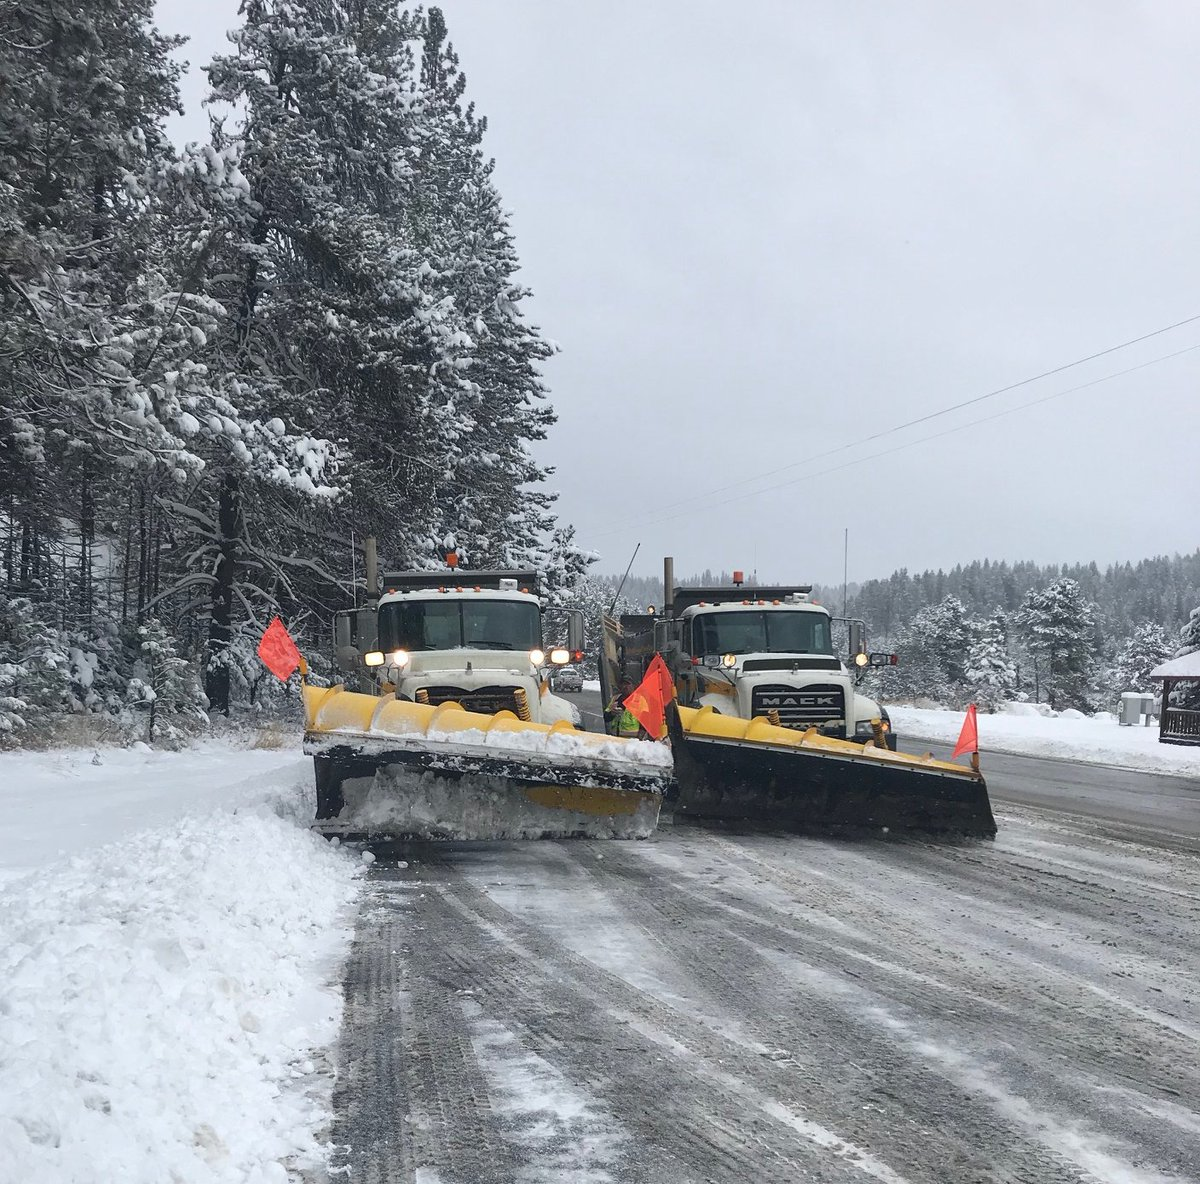 Our plow operators have been working through the night to keep roads safe for #Thanksgiving travel. Some will be on the road instead of around a dinner table tomorrow. We thank them for their service.